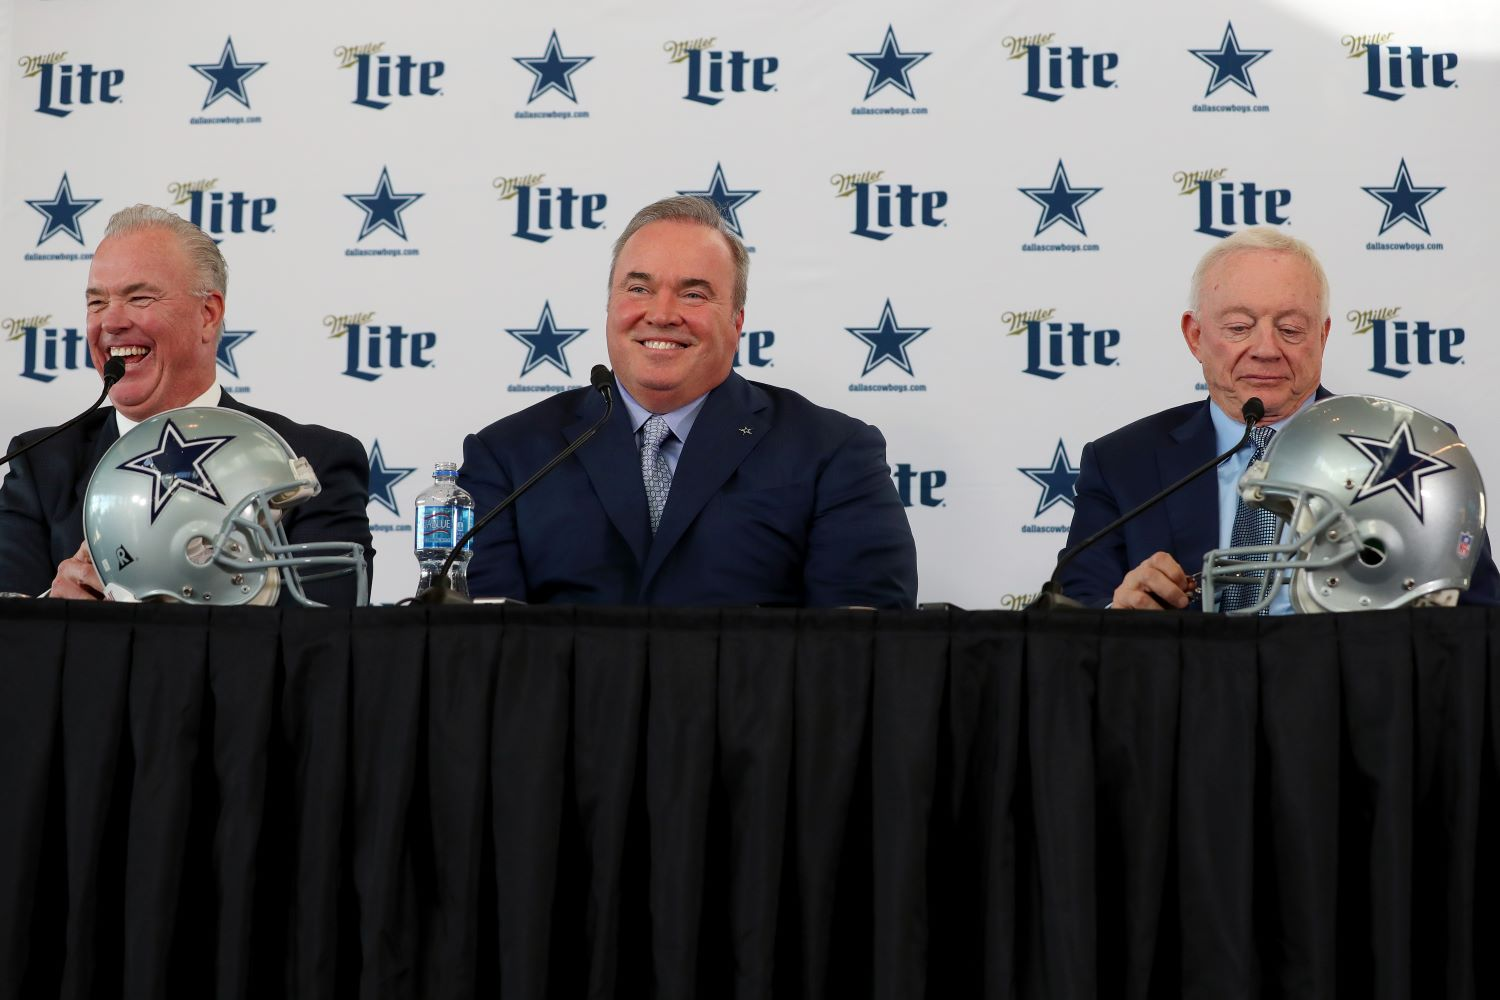 The Dallas Cowboys have already determined Mike McCarthy's fate, but will Jerry Jones change his mind by the end of the season?